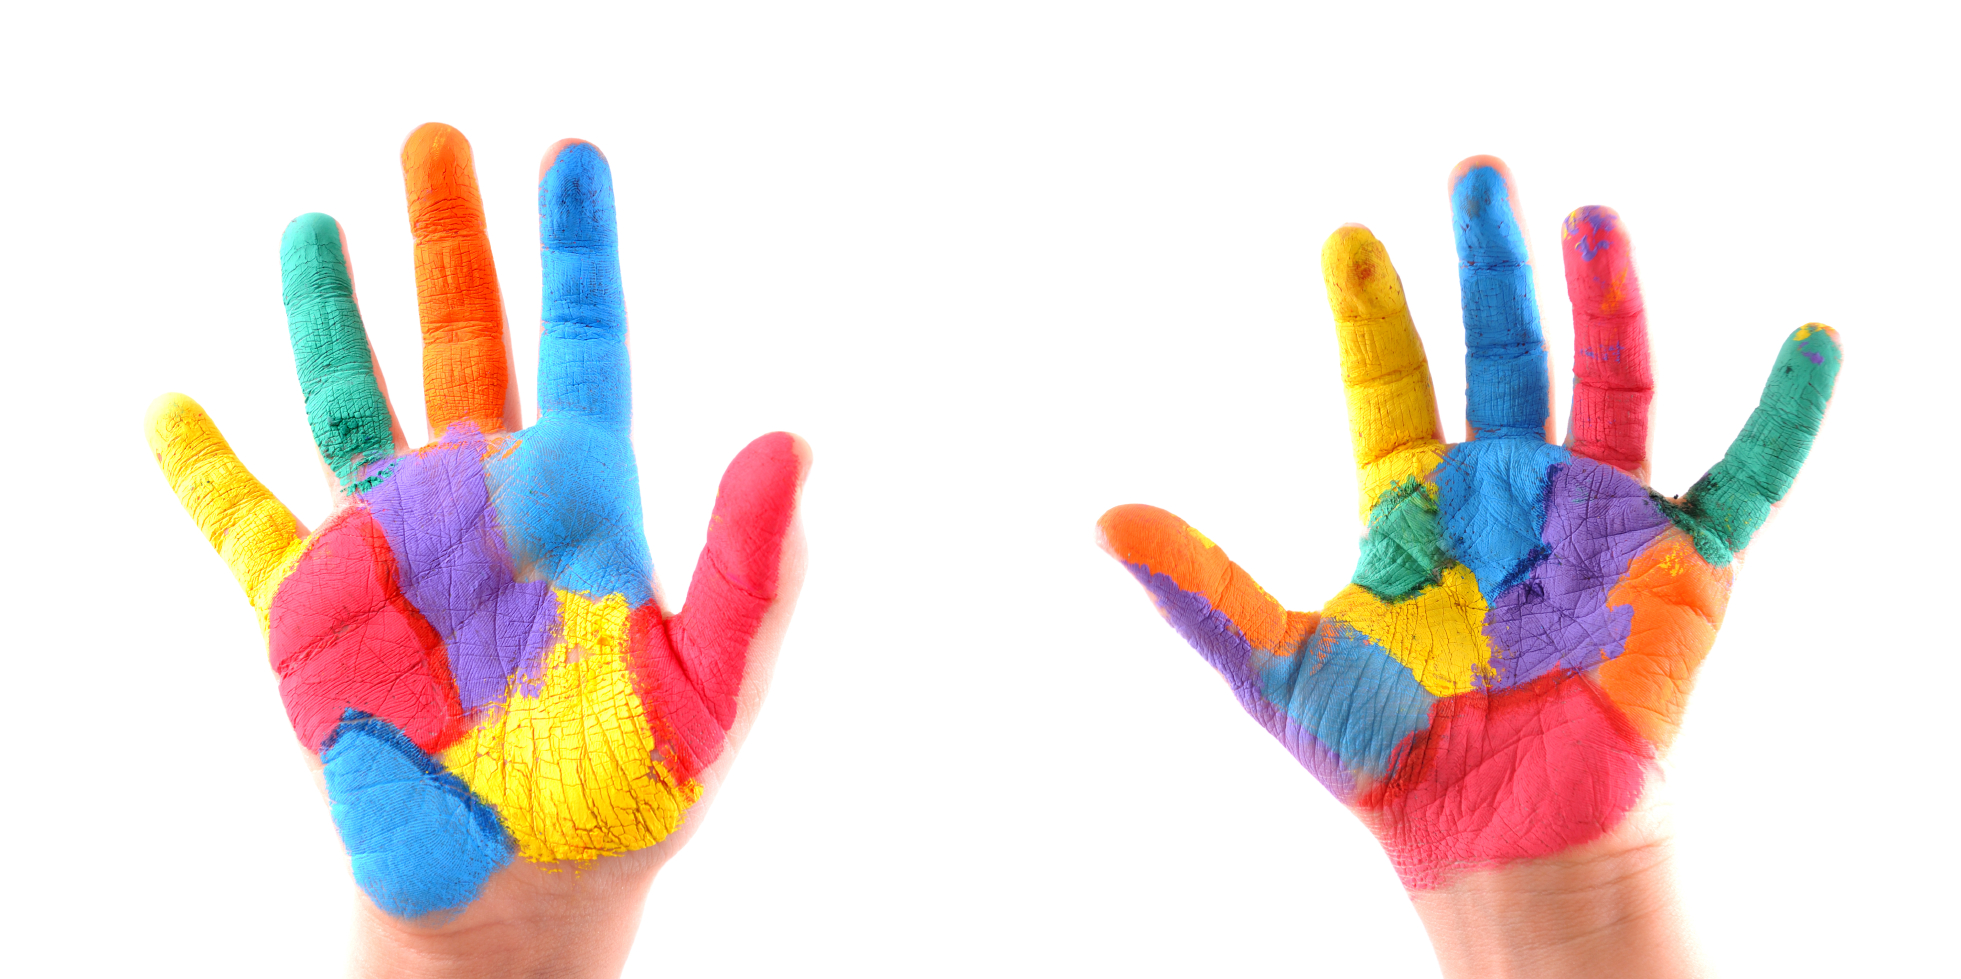 2 colorful hands